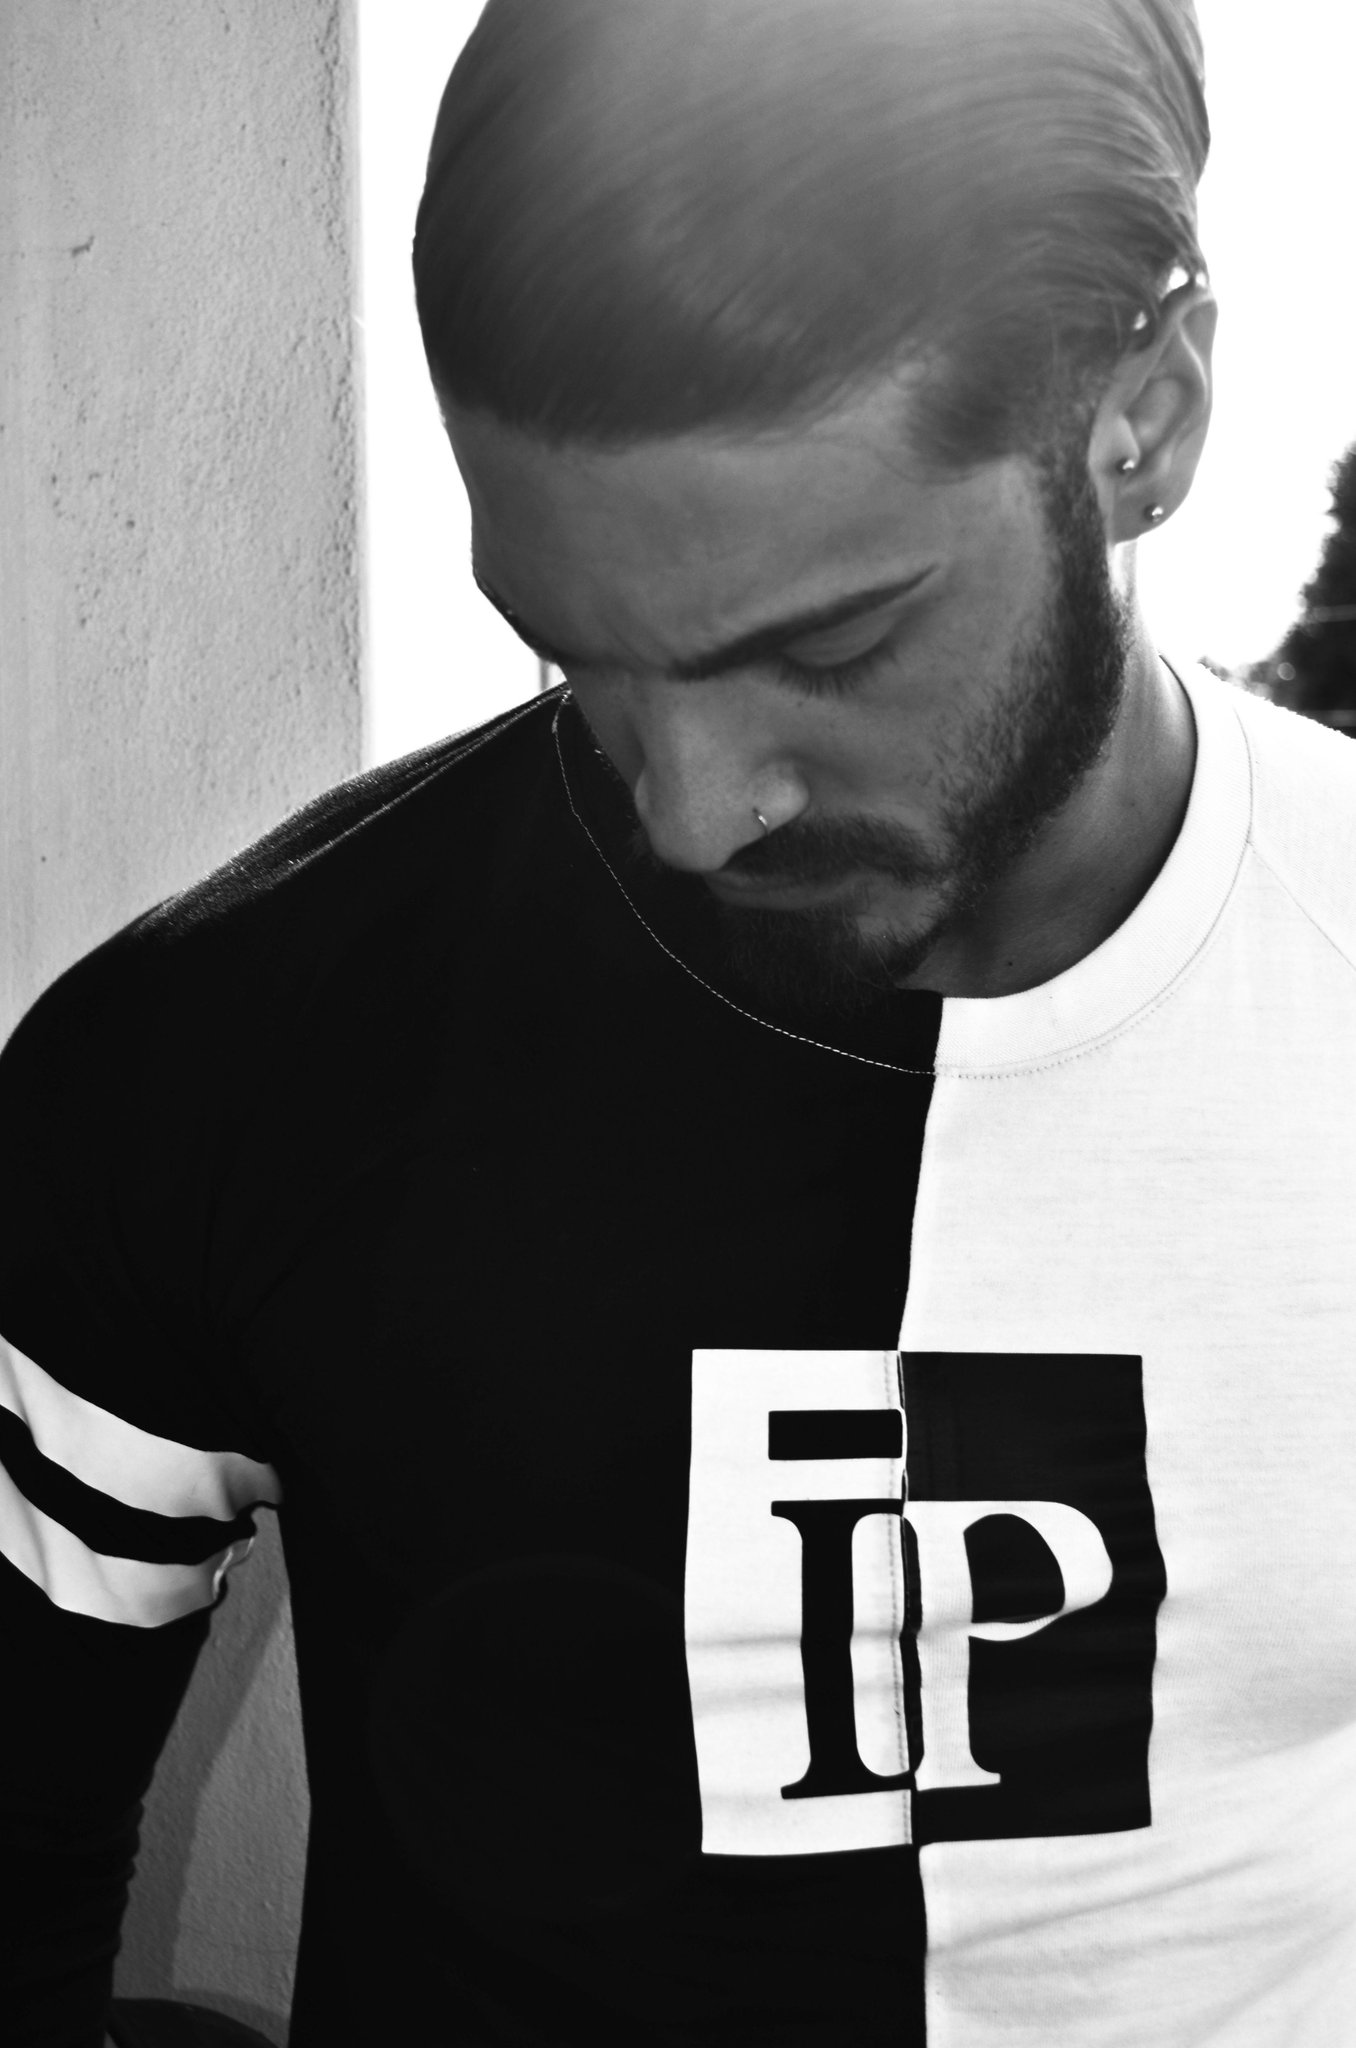 BLACK AND WHITE #fashion #style #menswear #photography #editorial #streetwear #essex #london #ootd #blog #chic #man http://t.co/LBleSS5xeR